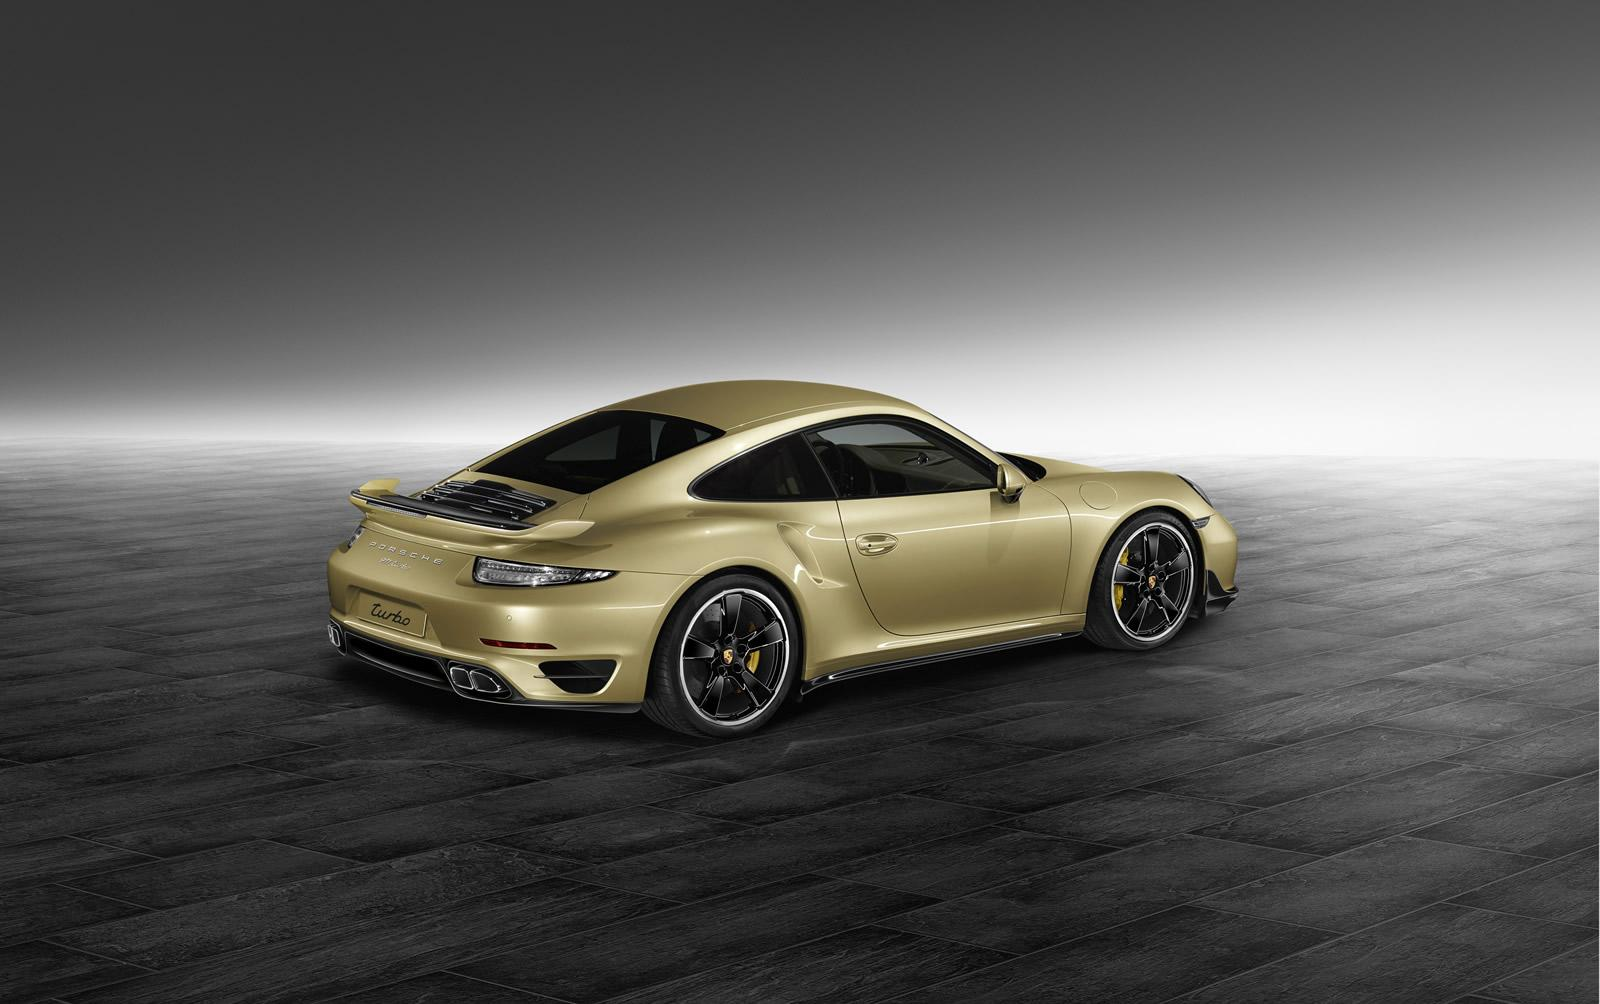 Be Turbo 2015 Porsche 911 Turbo Can Be Retrofitted With New Aerokit